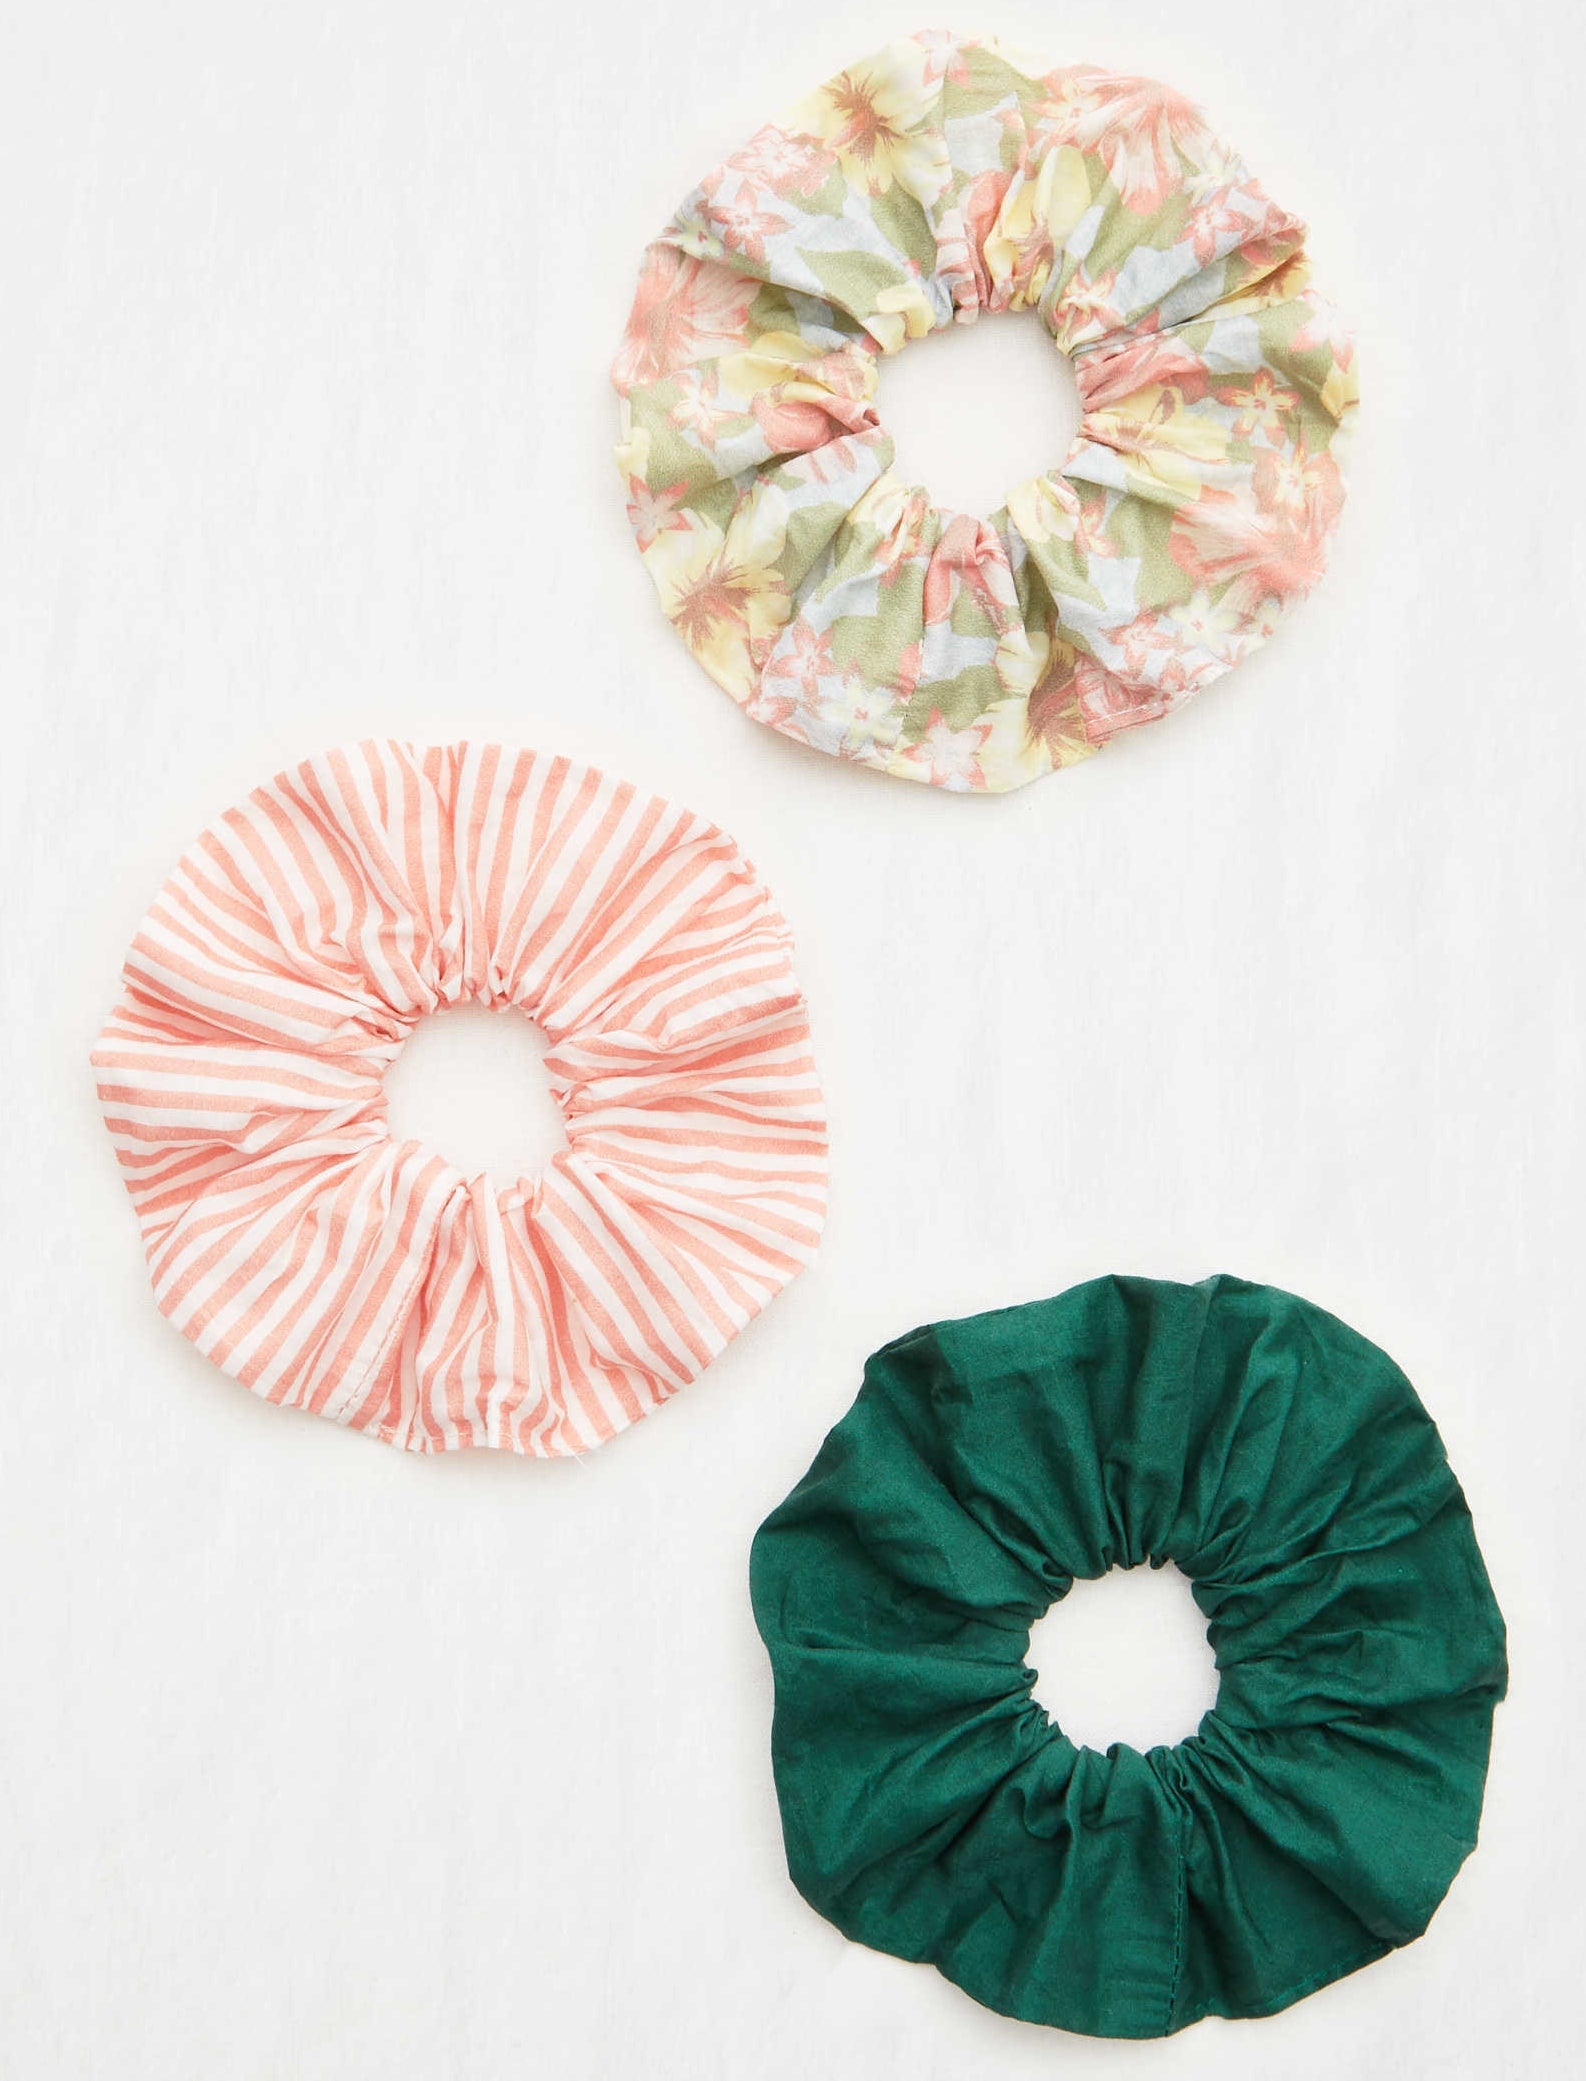 The three scrunchies: one floral print, one pinstriped light coral, one emerald